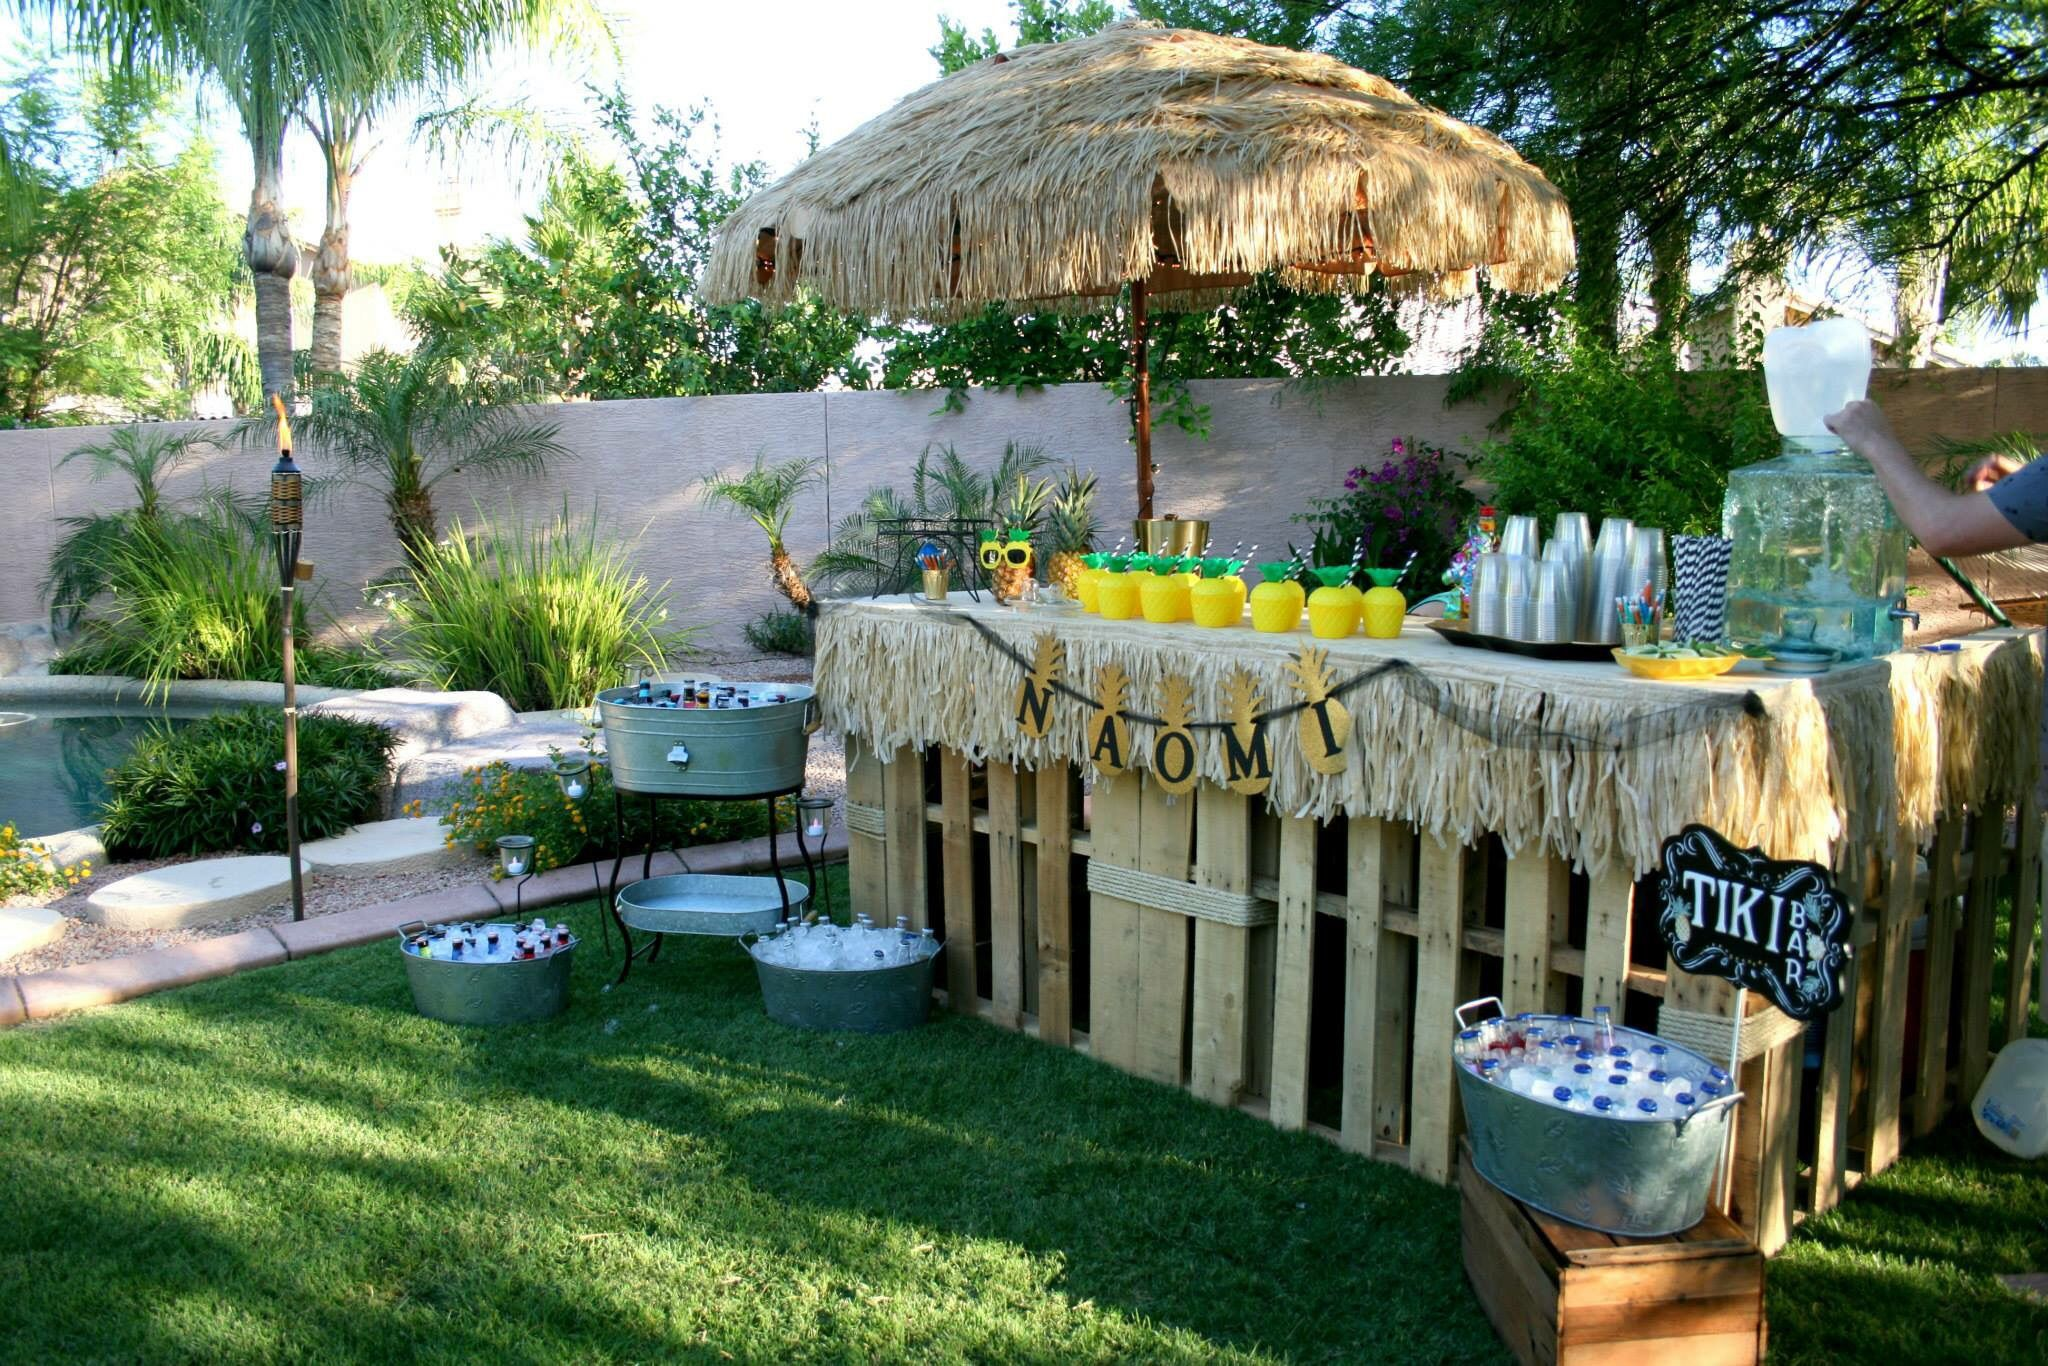 Tiki Bar At A Party Like Pineapple Themed Backyard Graduation Black And White